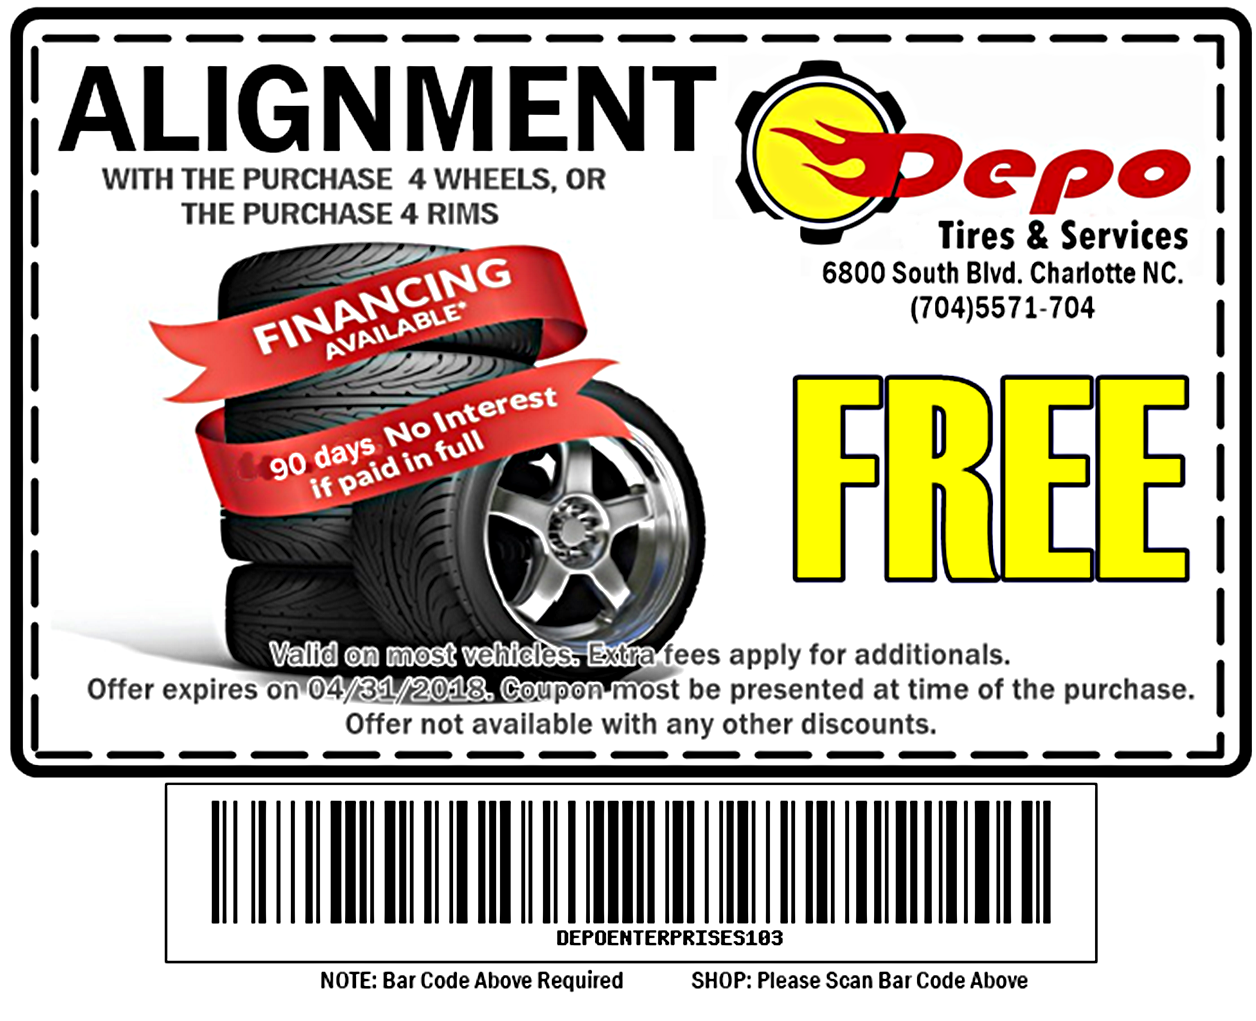 Depo Tires and Services